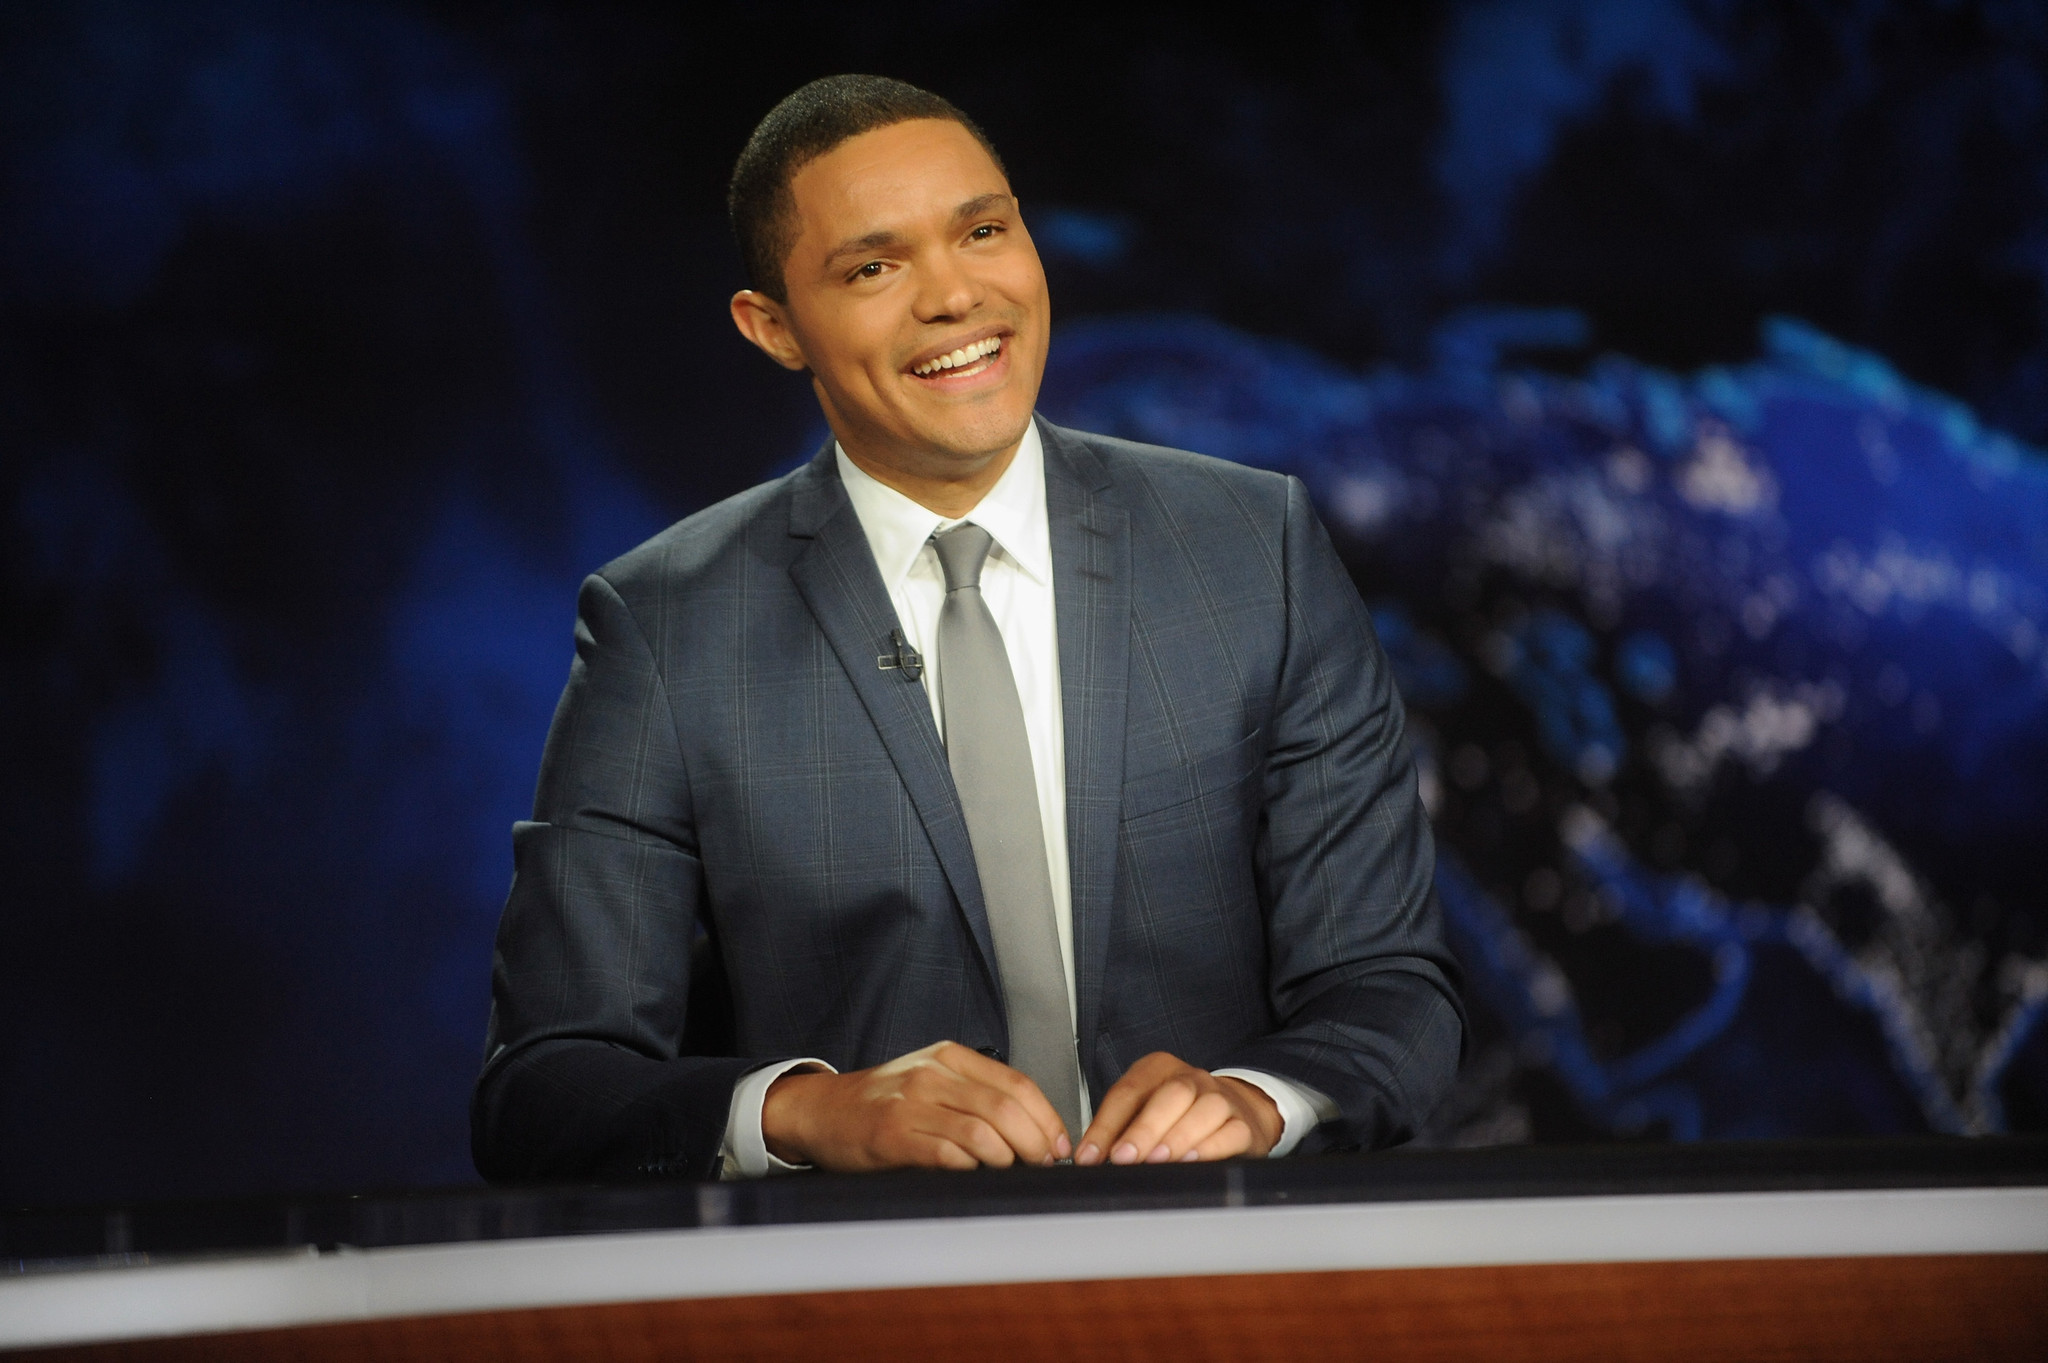 Trevor noah and the daily show lead the fray in convention coverage chicago tribune